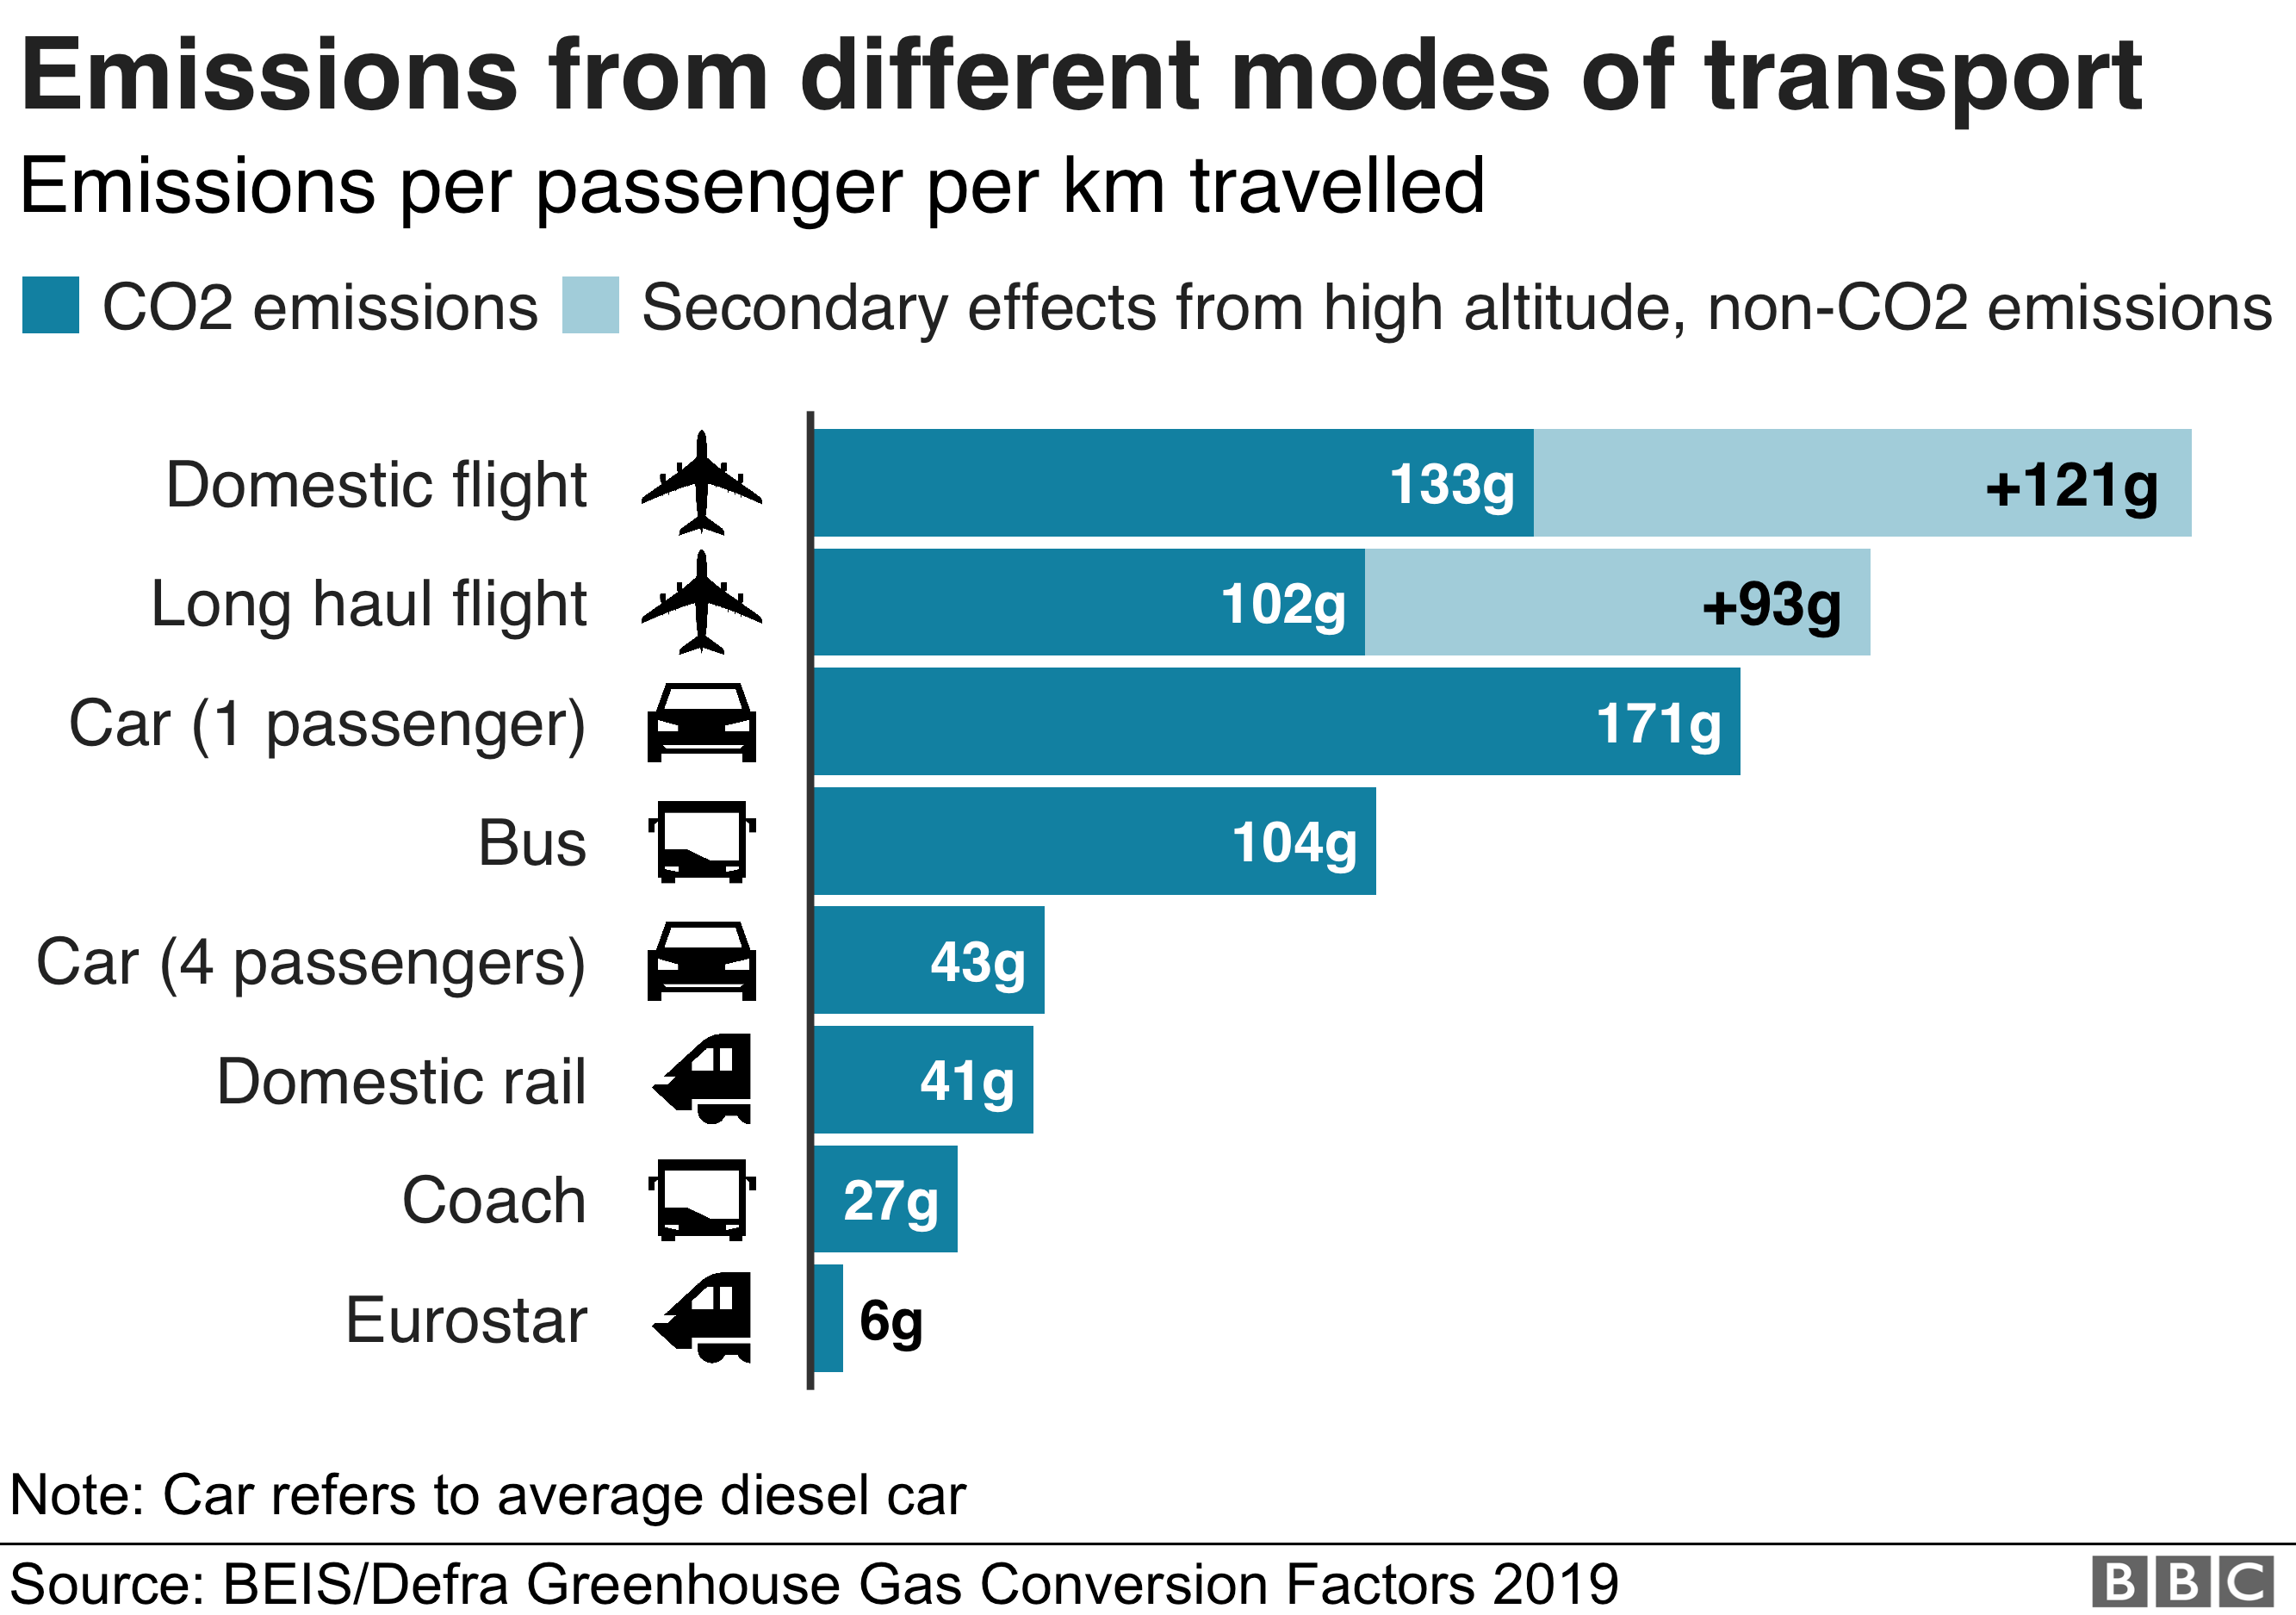 Graph showing emissions from different modes of transport